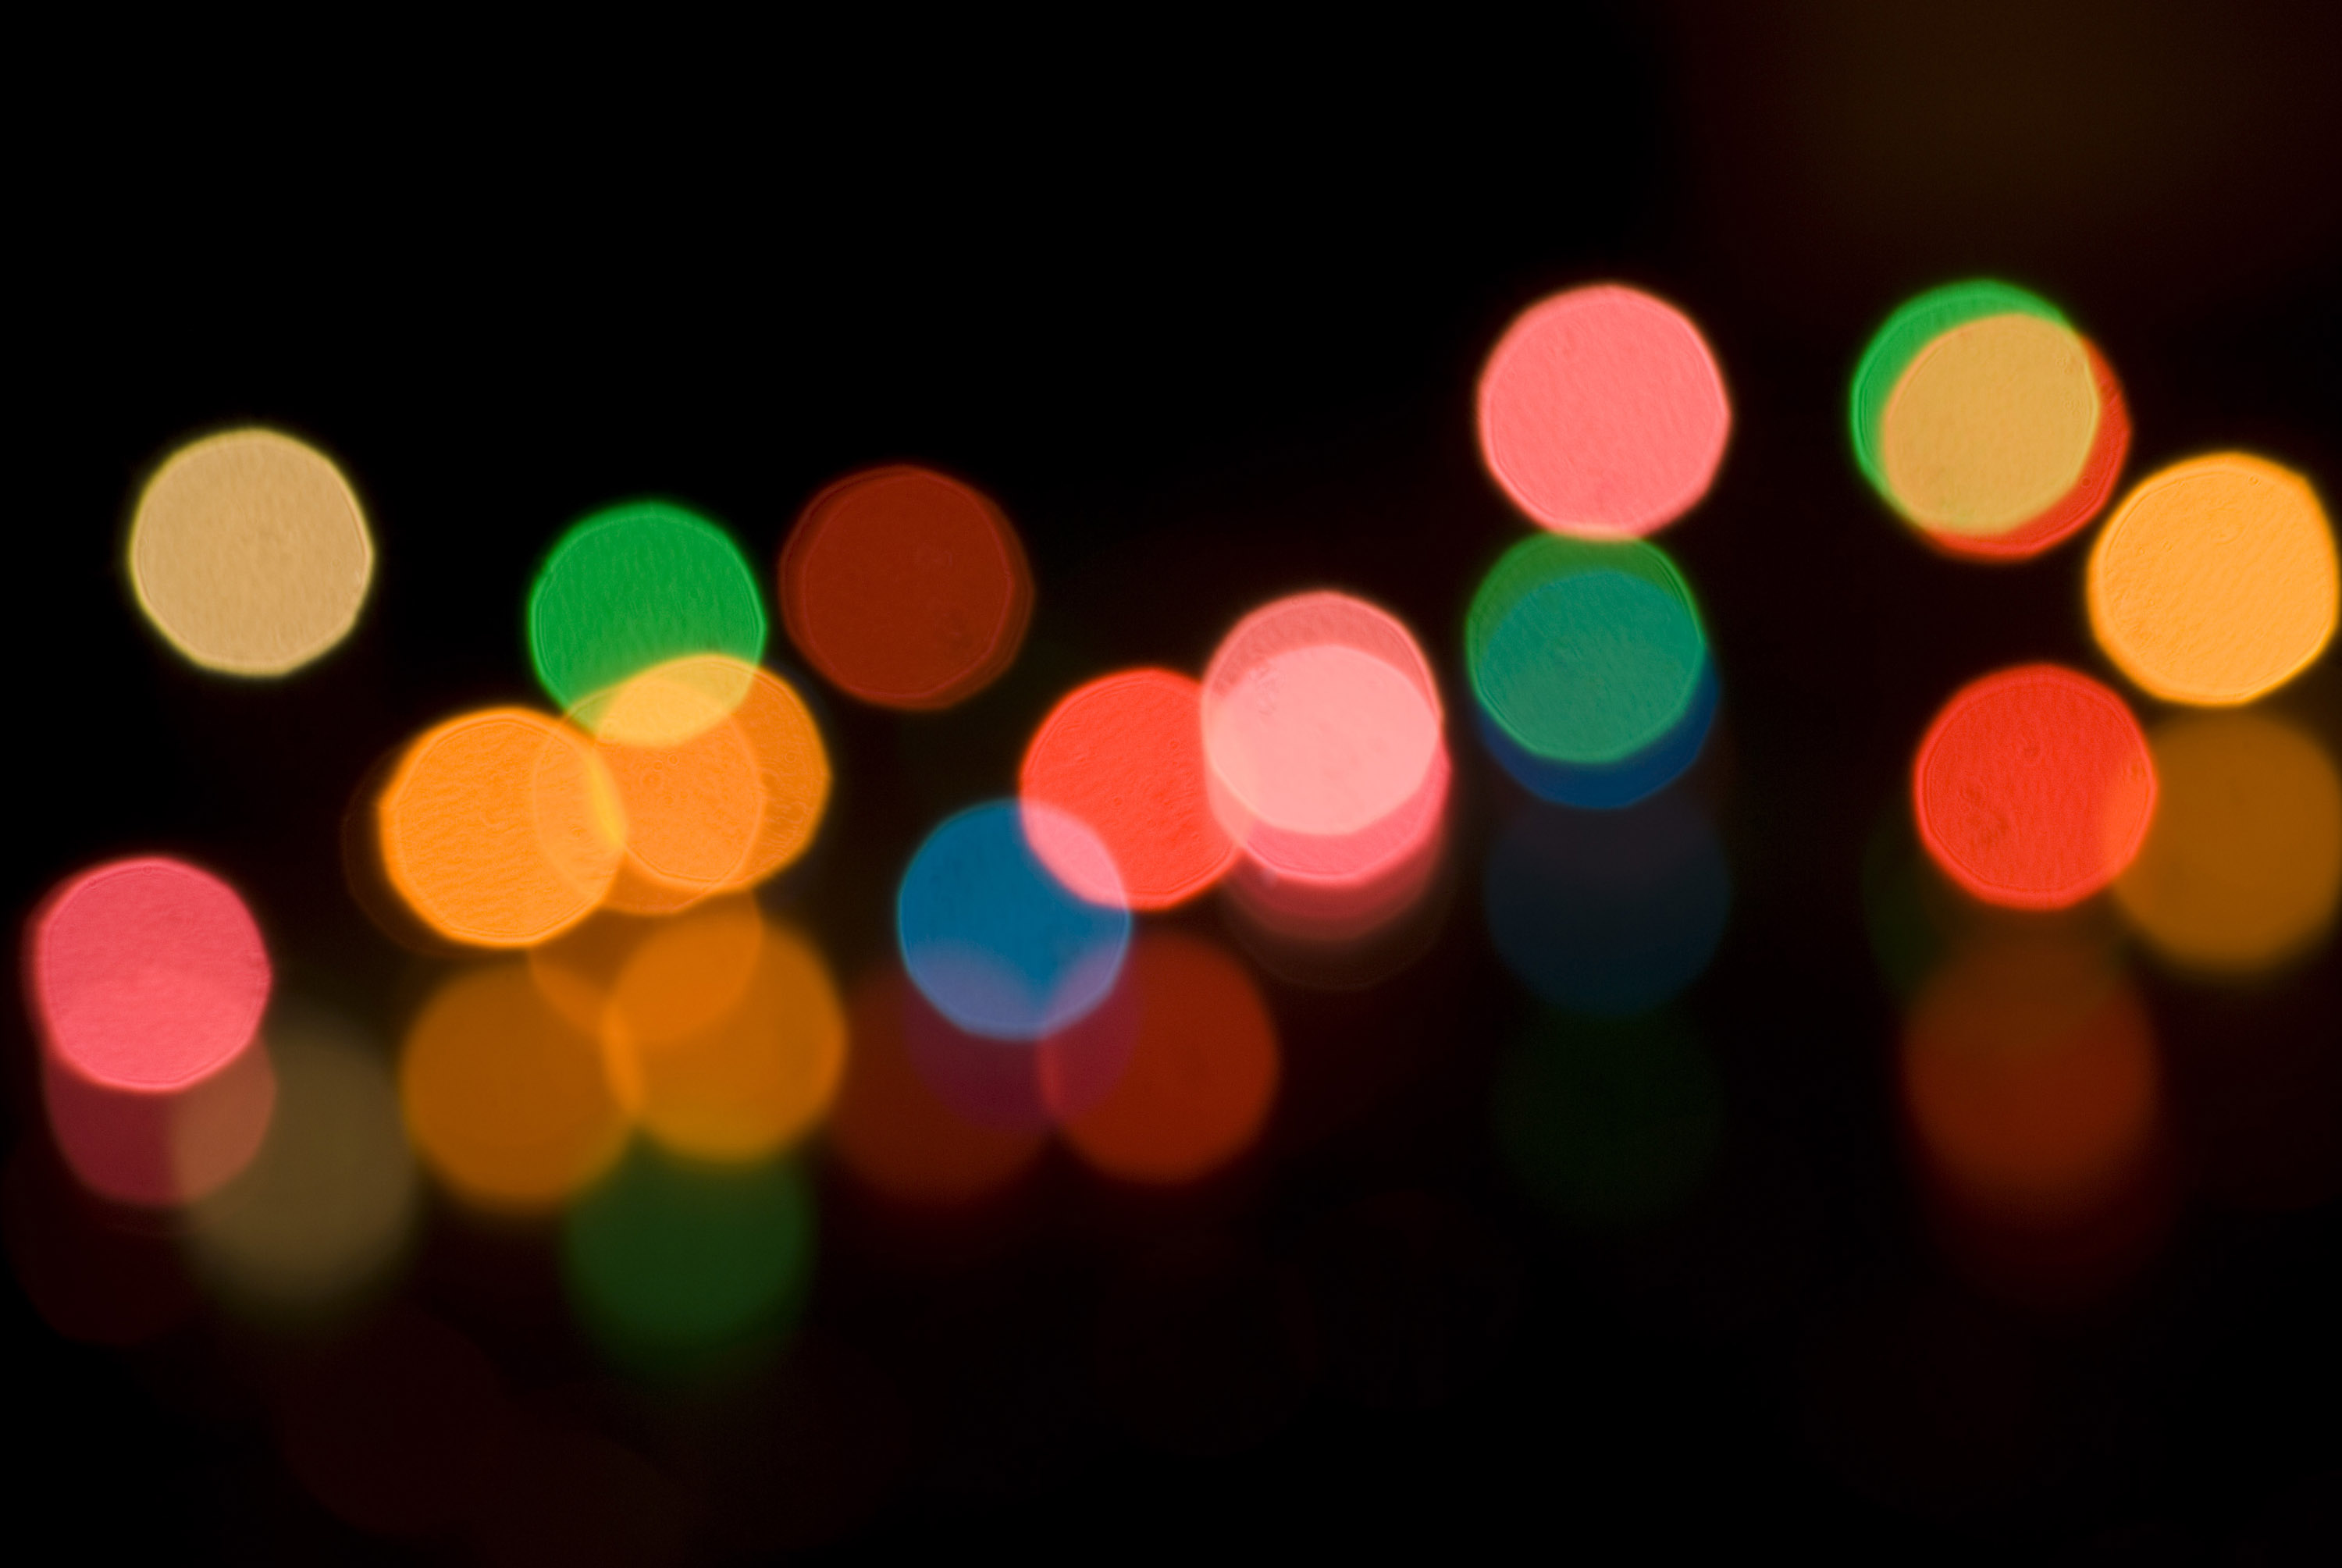 Hd Wallpaper Diwali Light Photo Of Light Bokeh Free Christmas Images